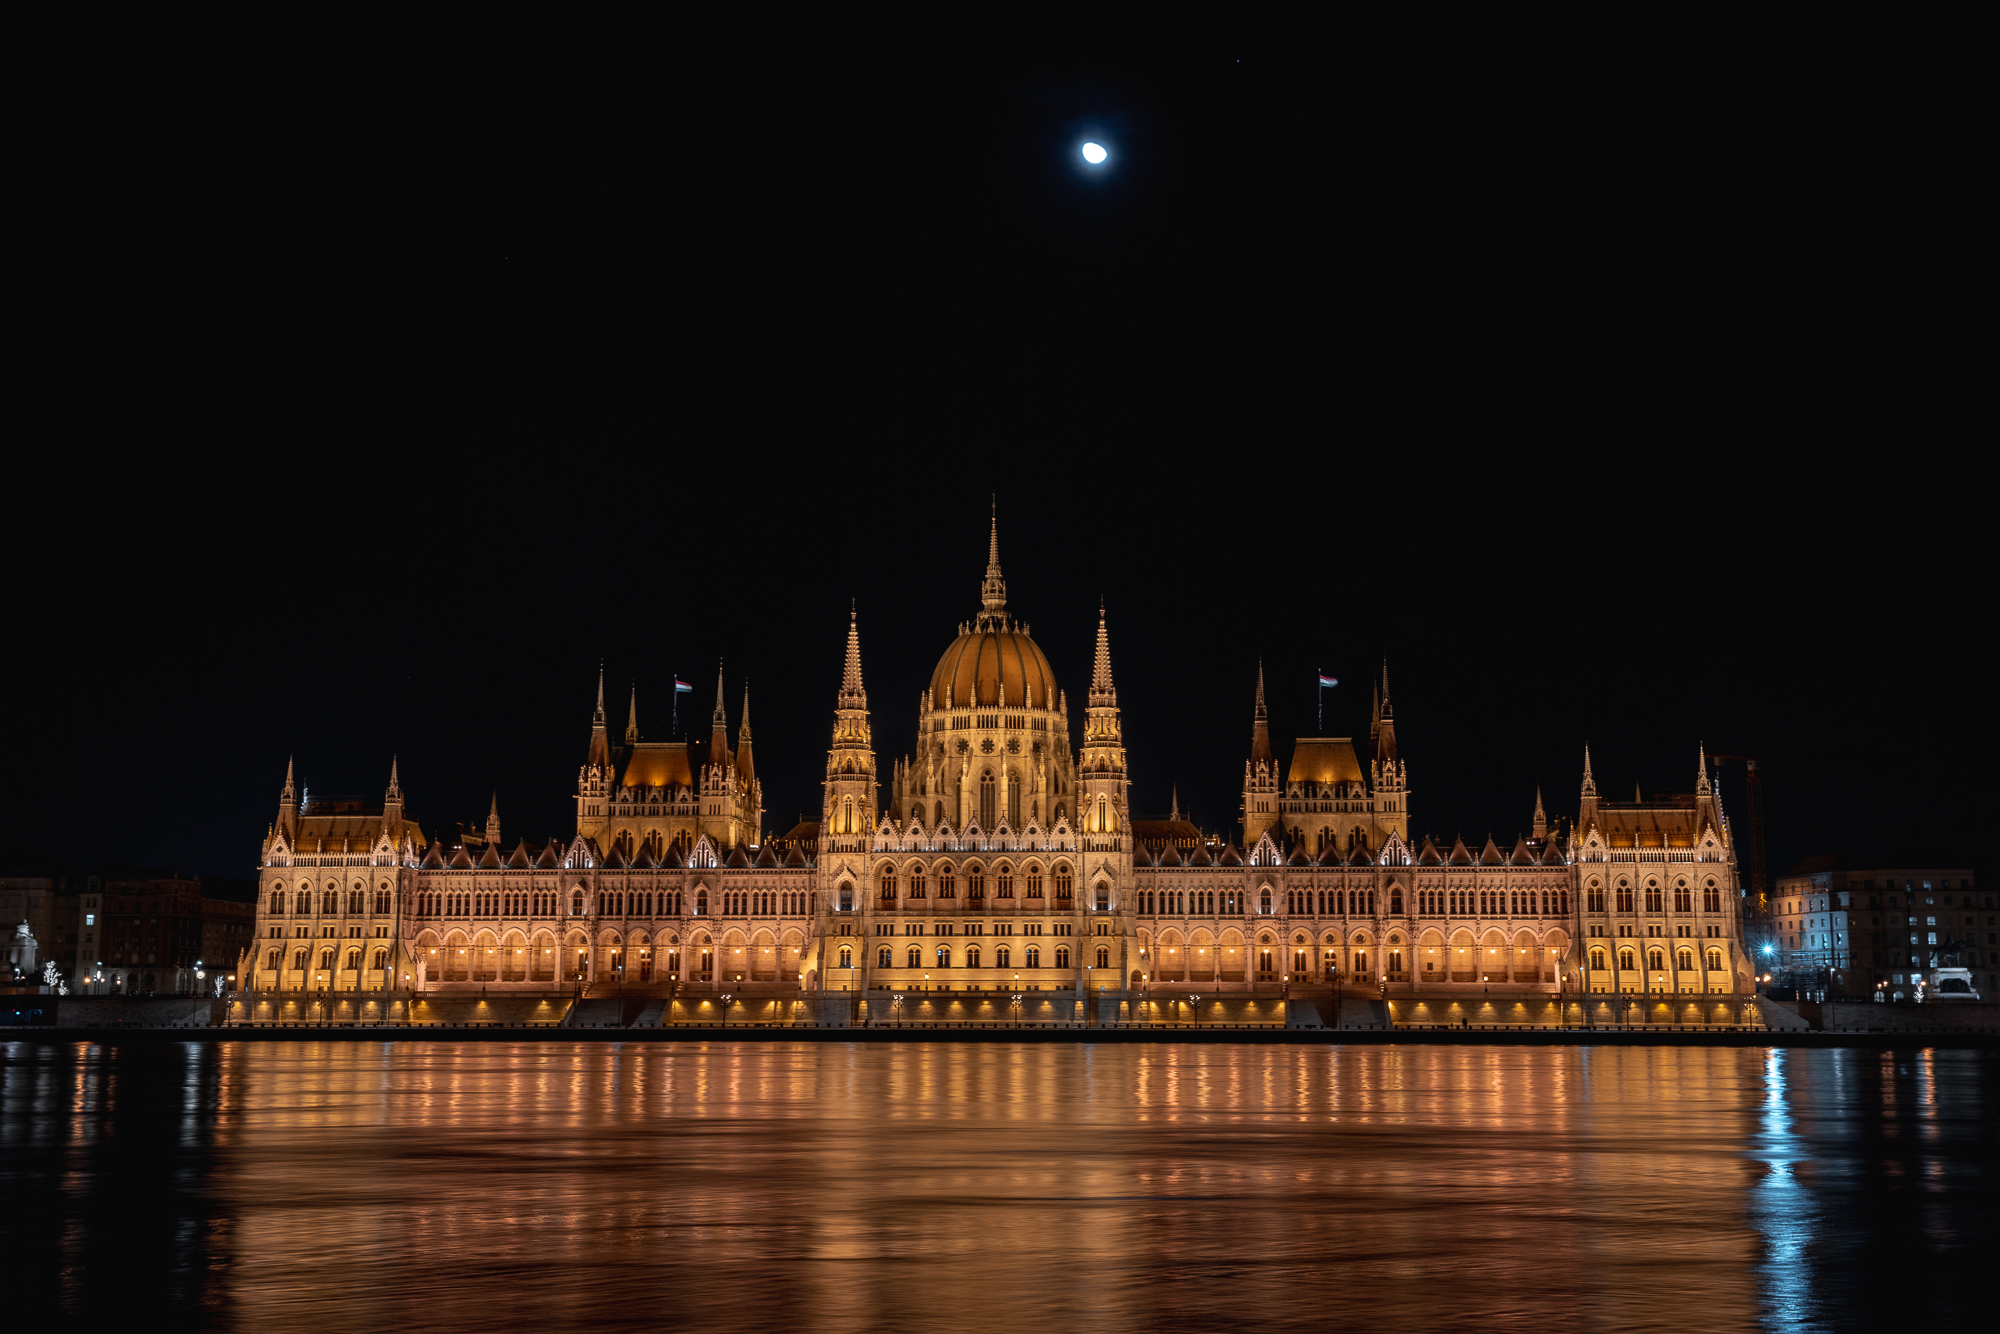 Hungarian Parliament Building in Budapest at night